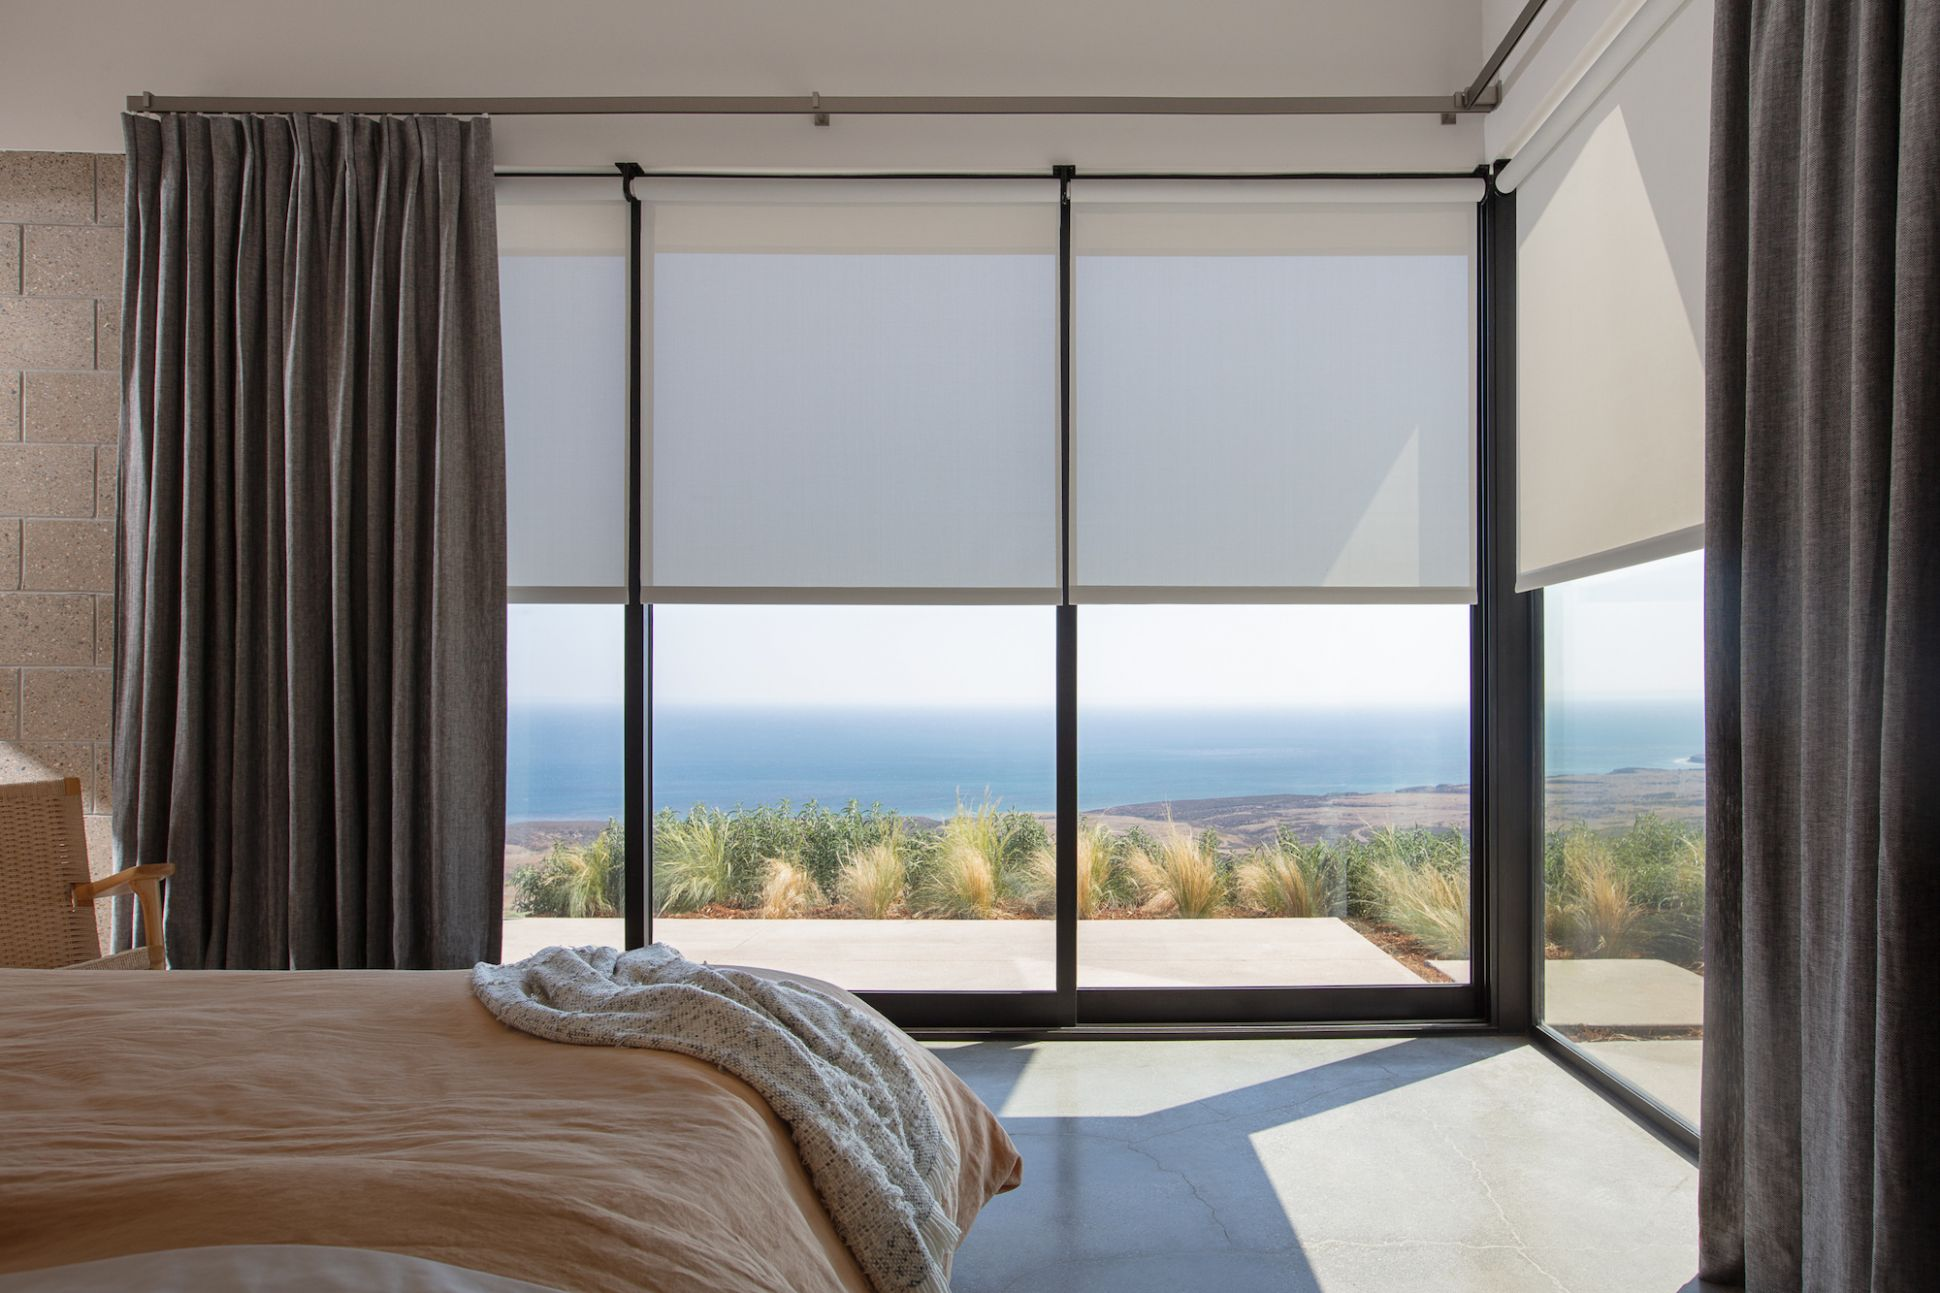 Window Treatments for Sliding Glass & Patio Doors | The Shade Store